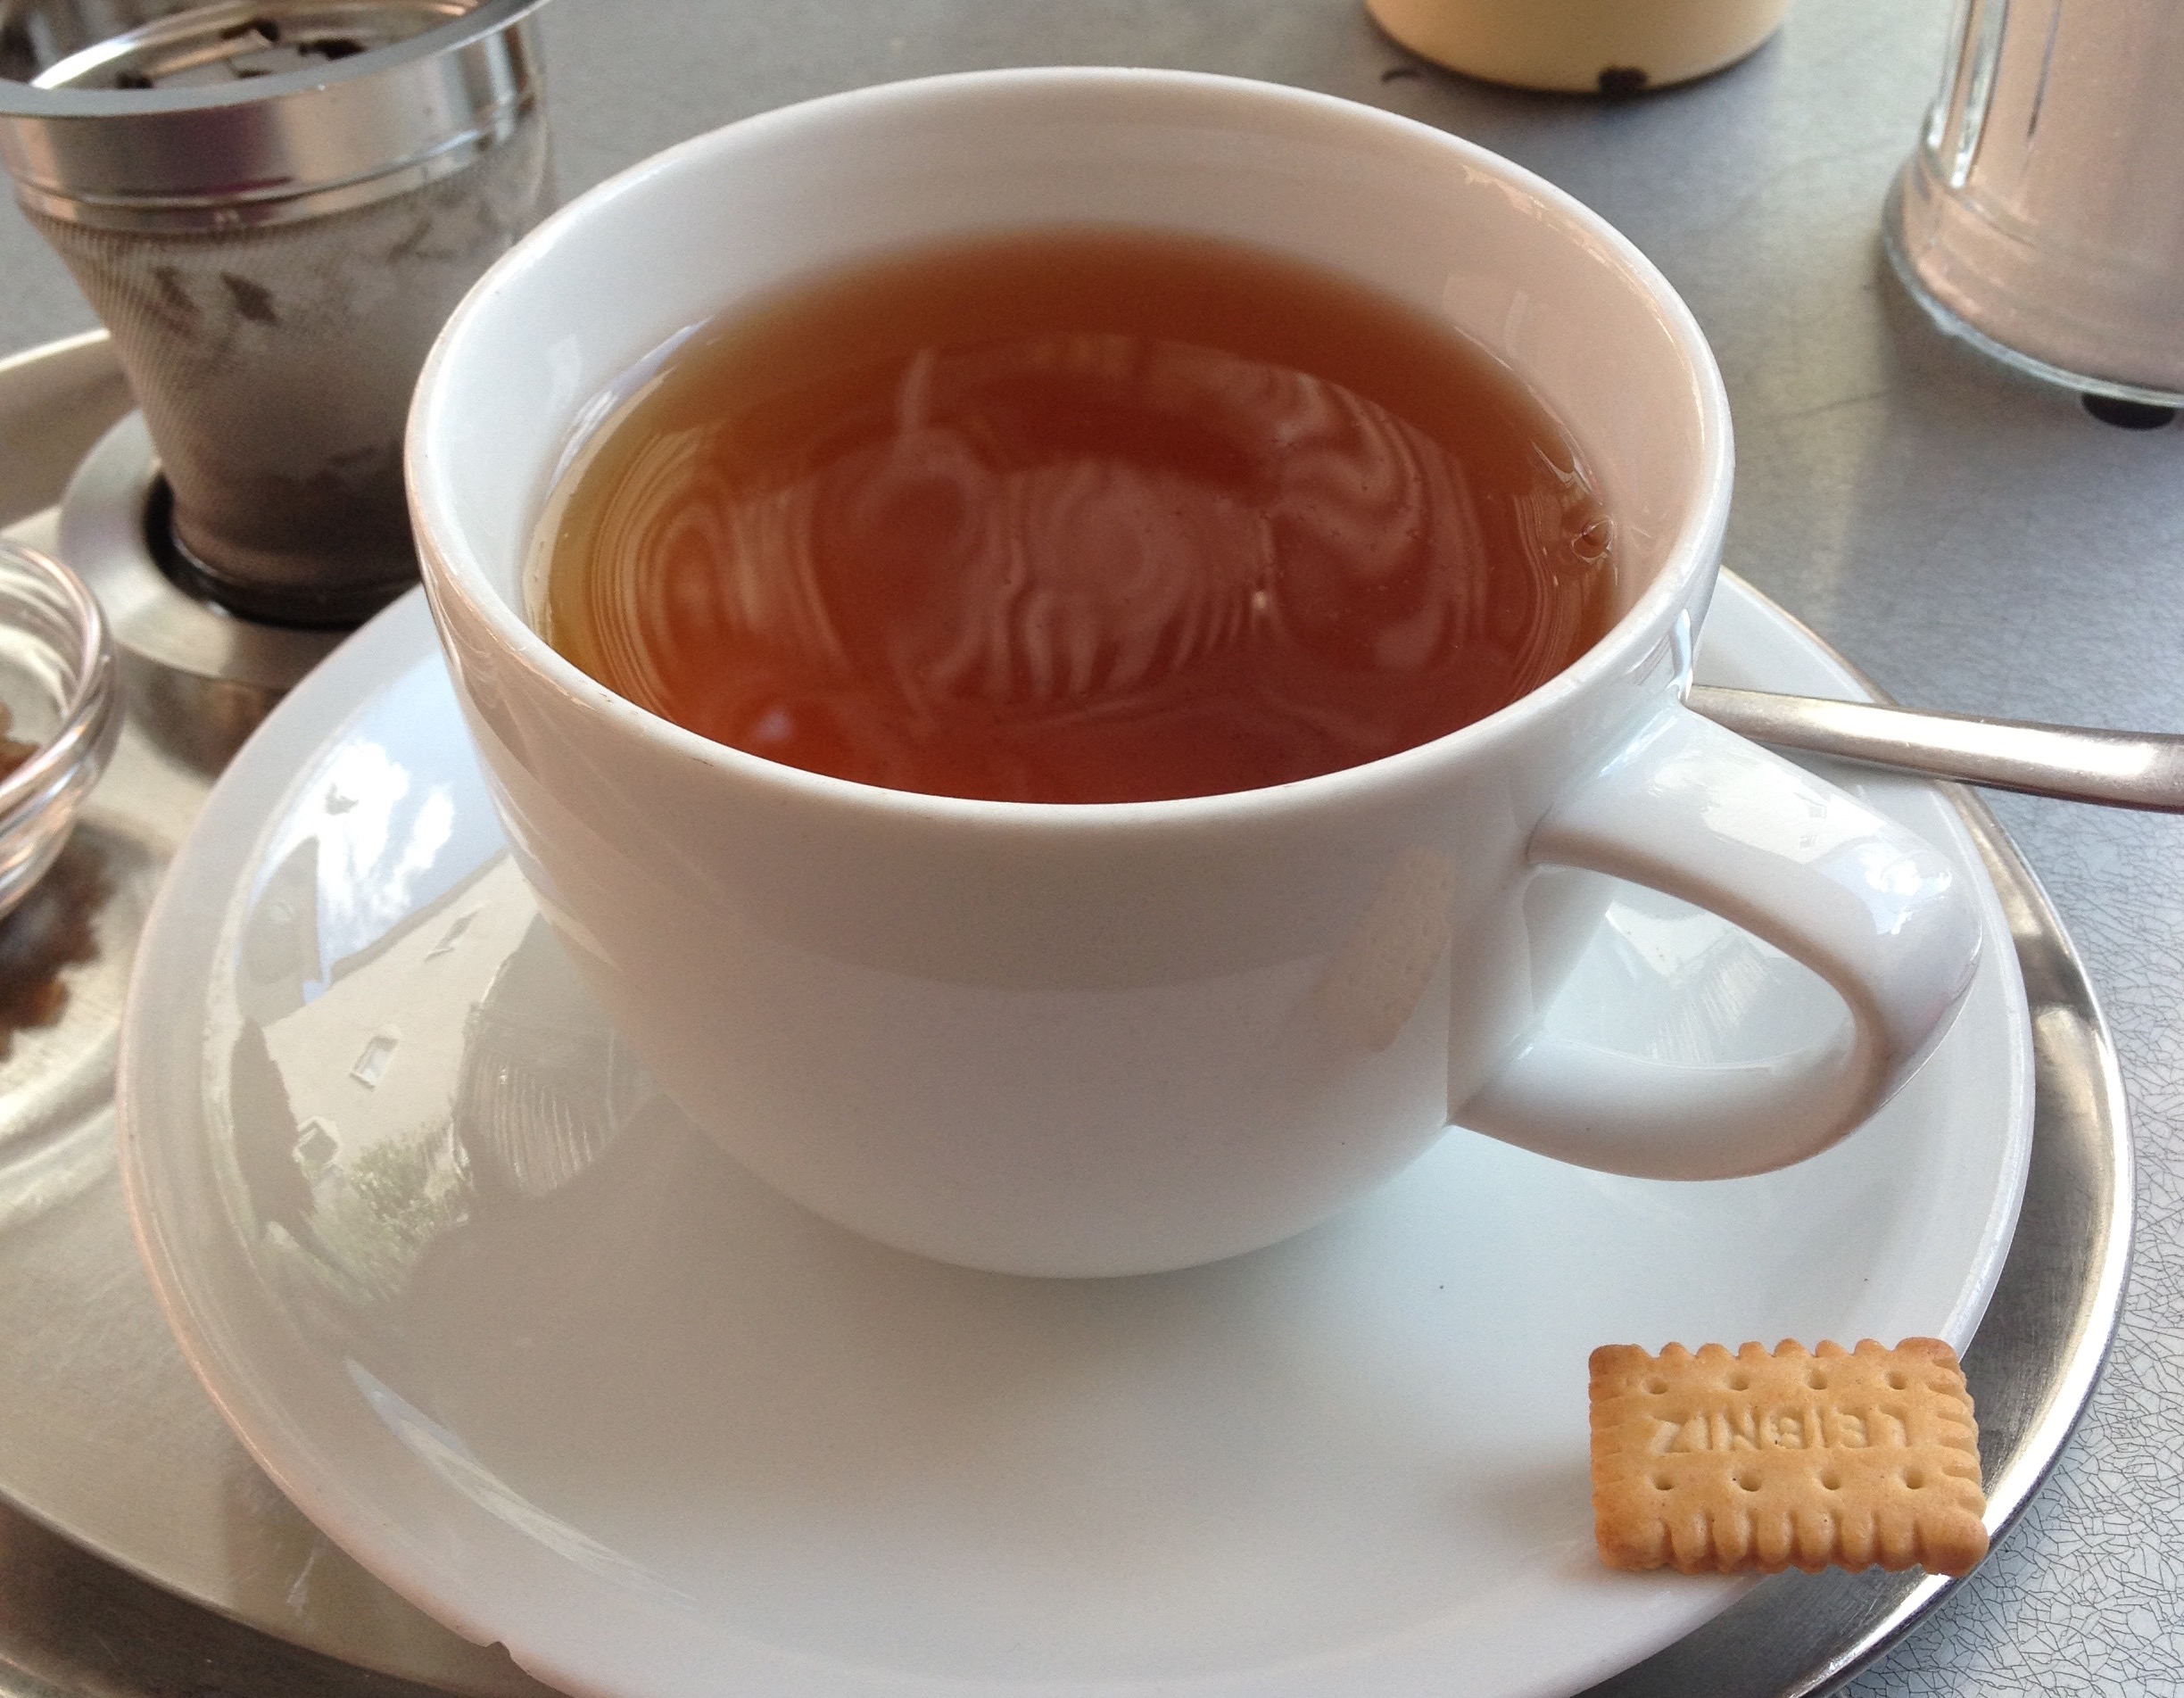 Speed-cutting preparation: a cup of Earl Grey tea and a biscuit